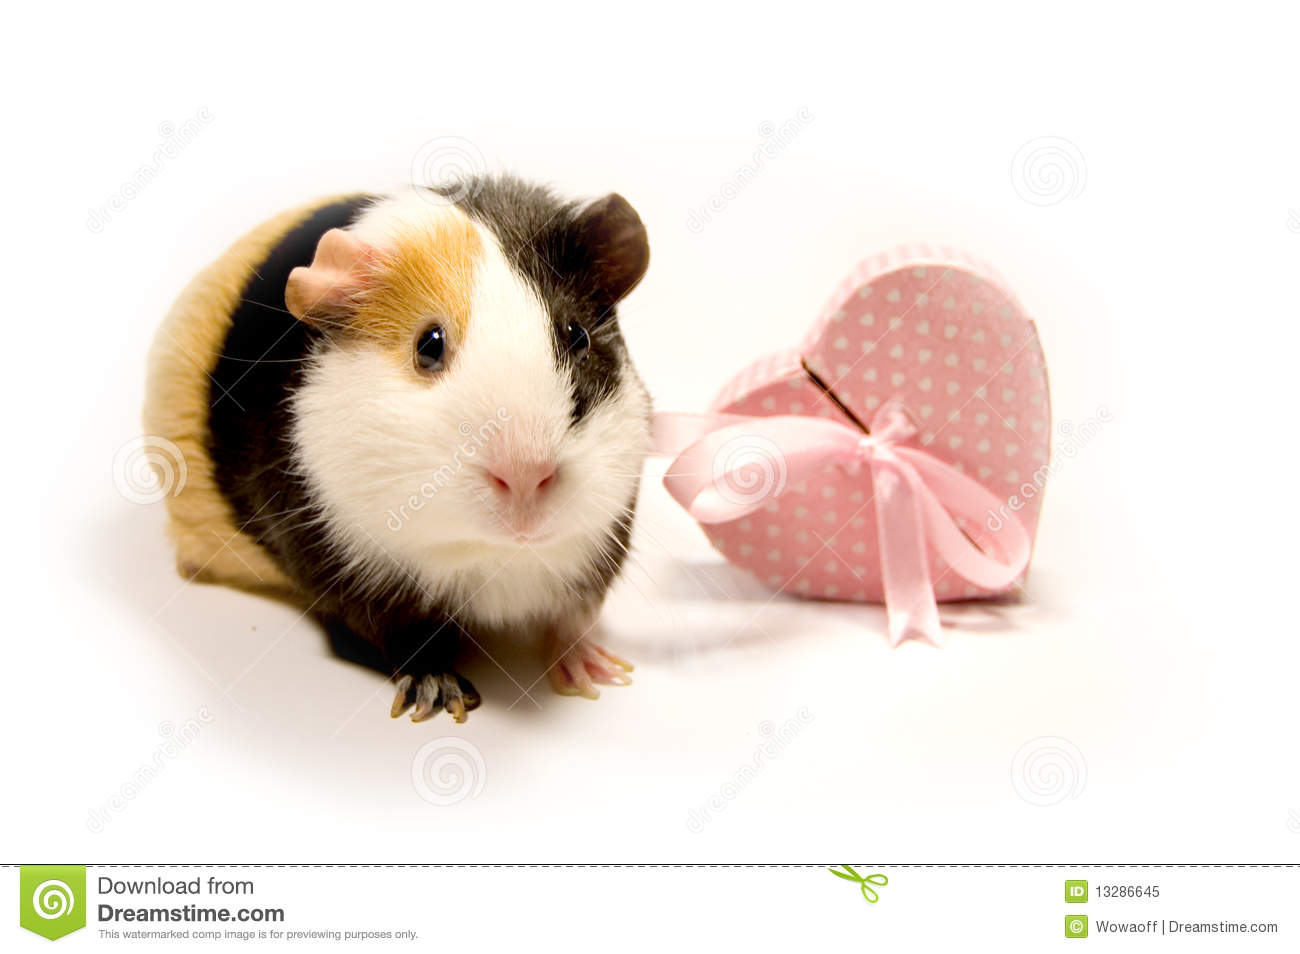 Guinea pig royalty free stock photo image 13286645 for Guinea pig pictures free